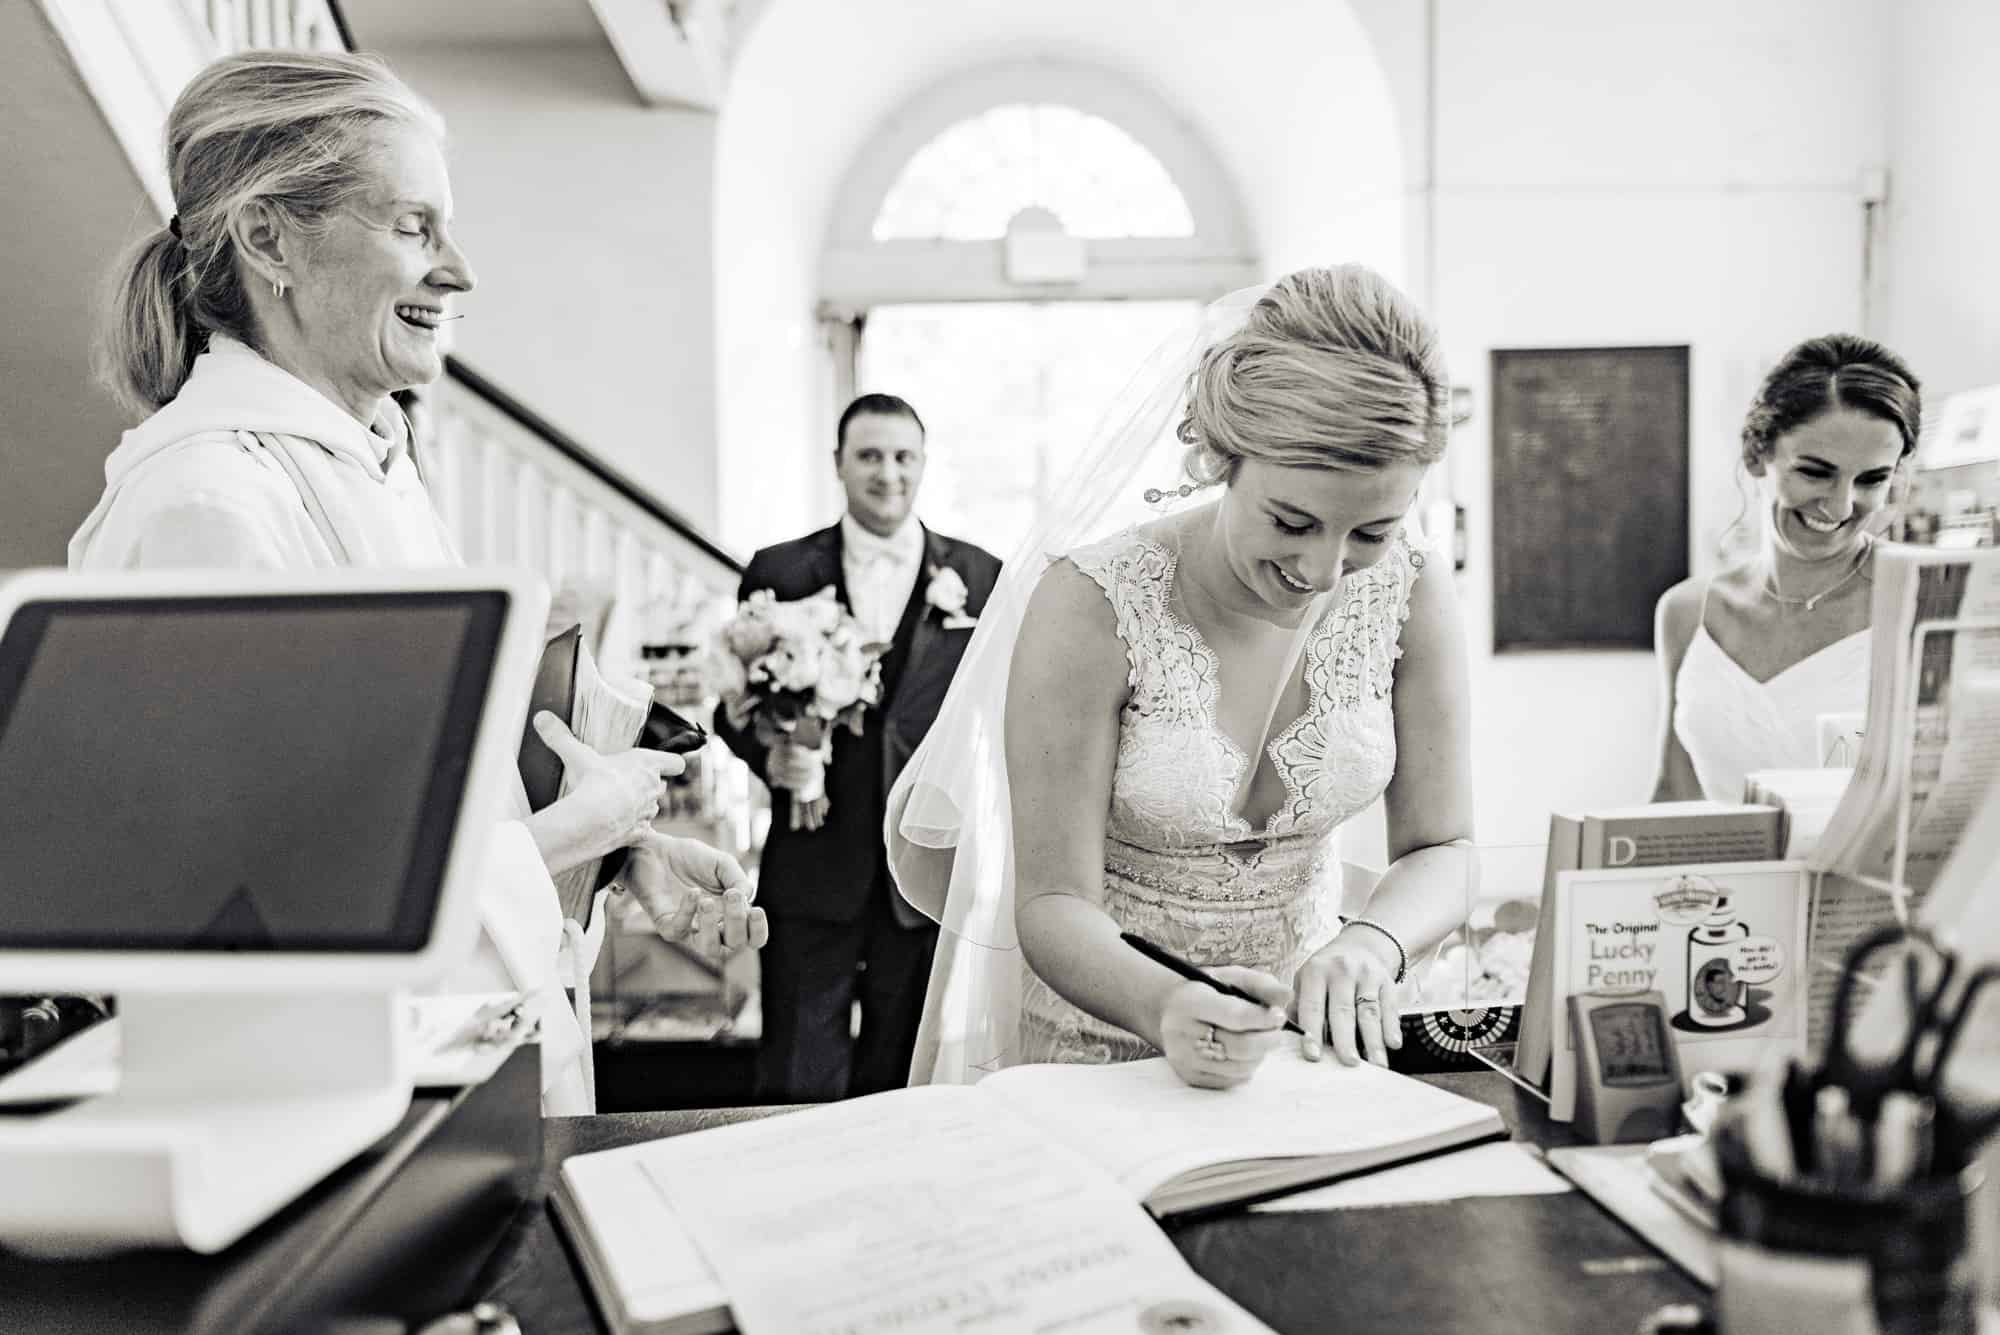 wedding day, bride signing guestbook after the ceremony